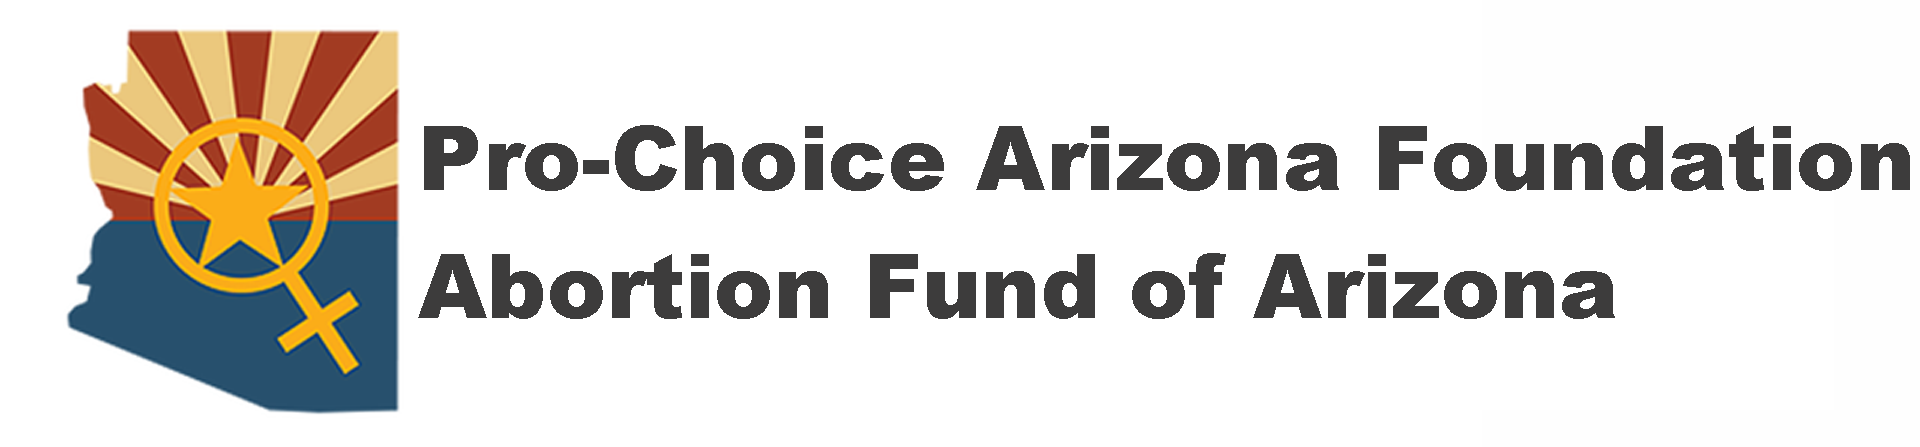 Abortion Fund of Arizona